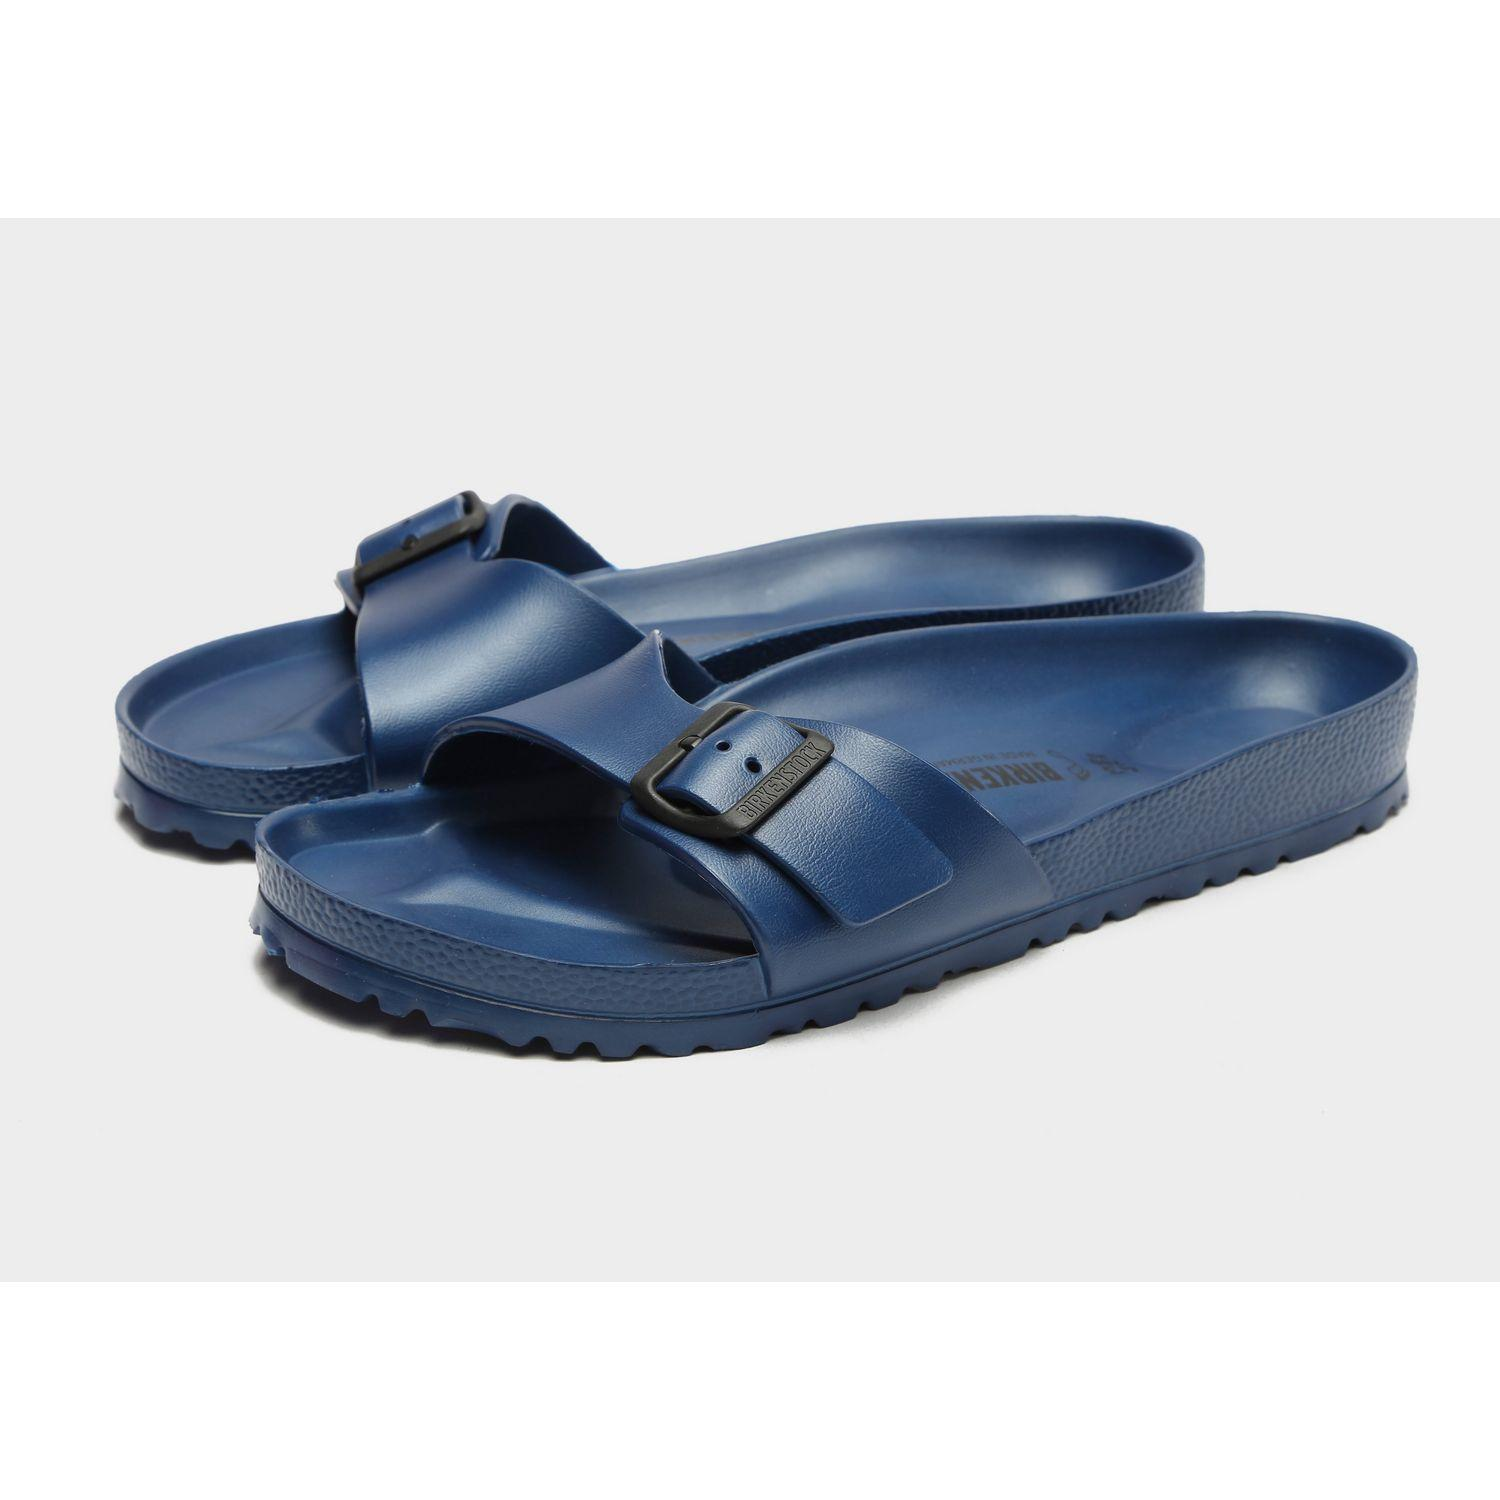 ff75fdfc54f6d Lyst - Birkenstock Madrid Eva Slides in Blue for Men